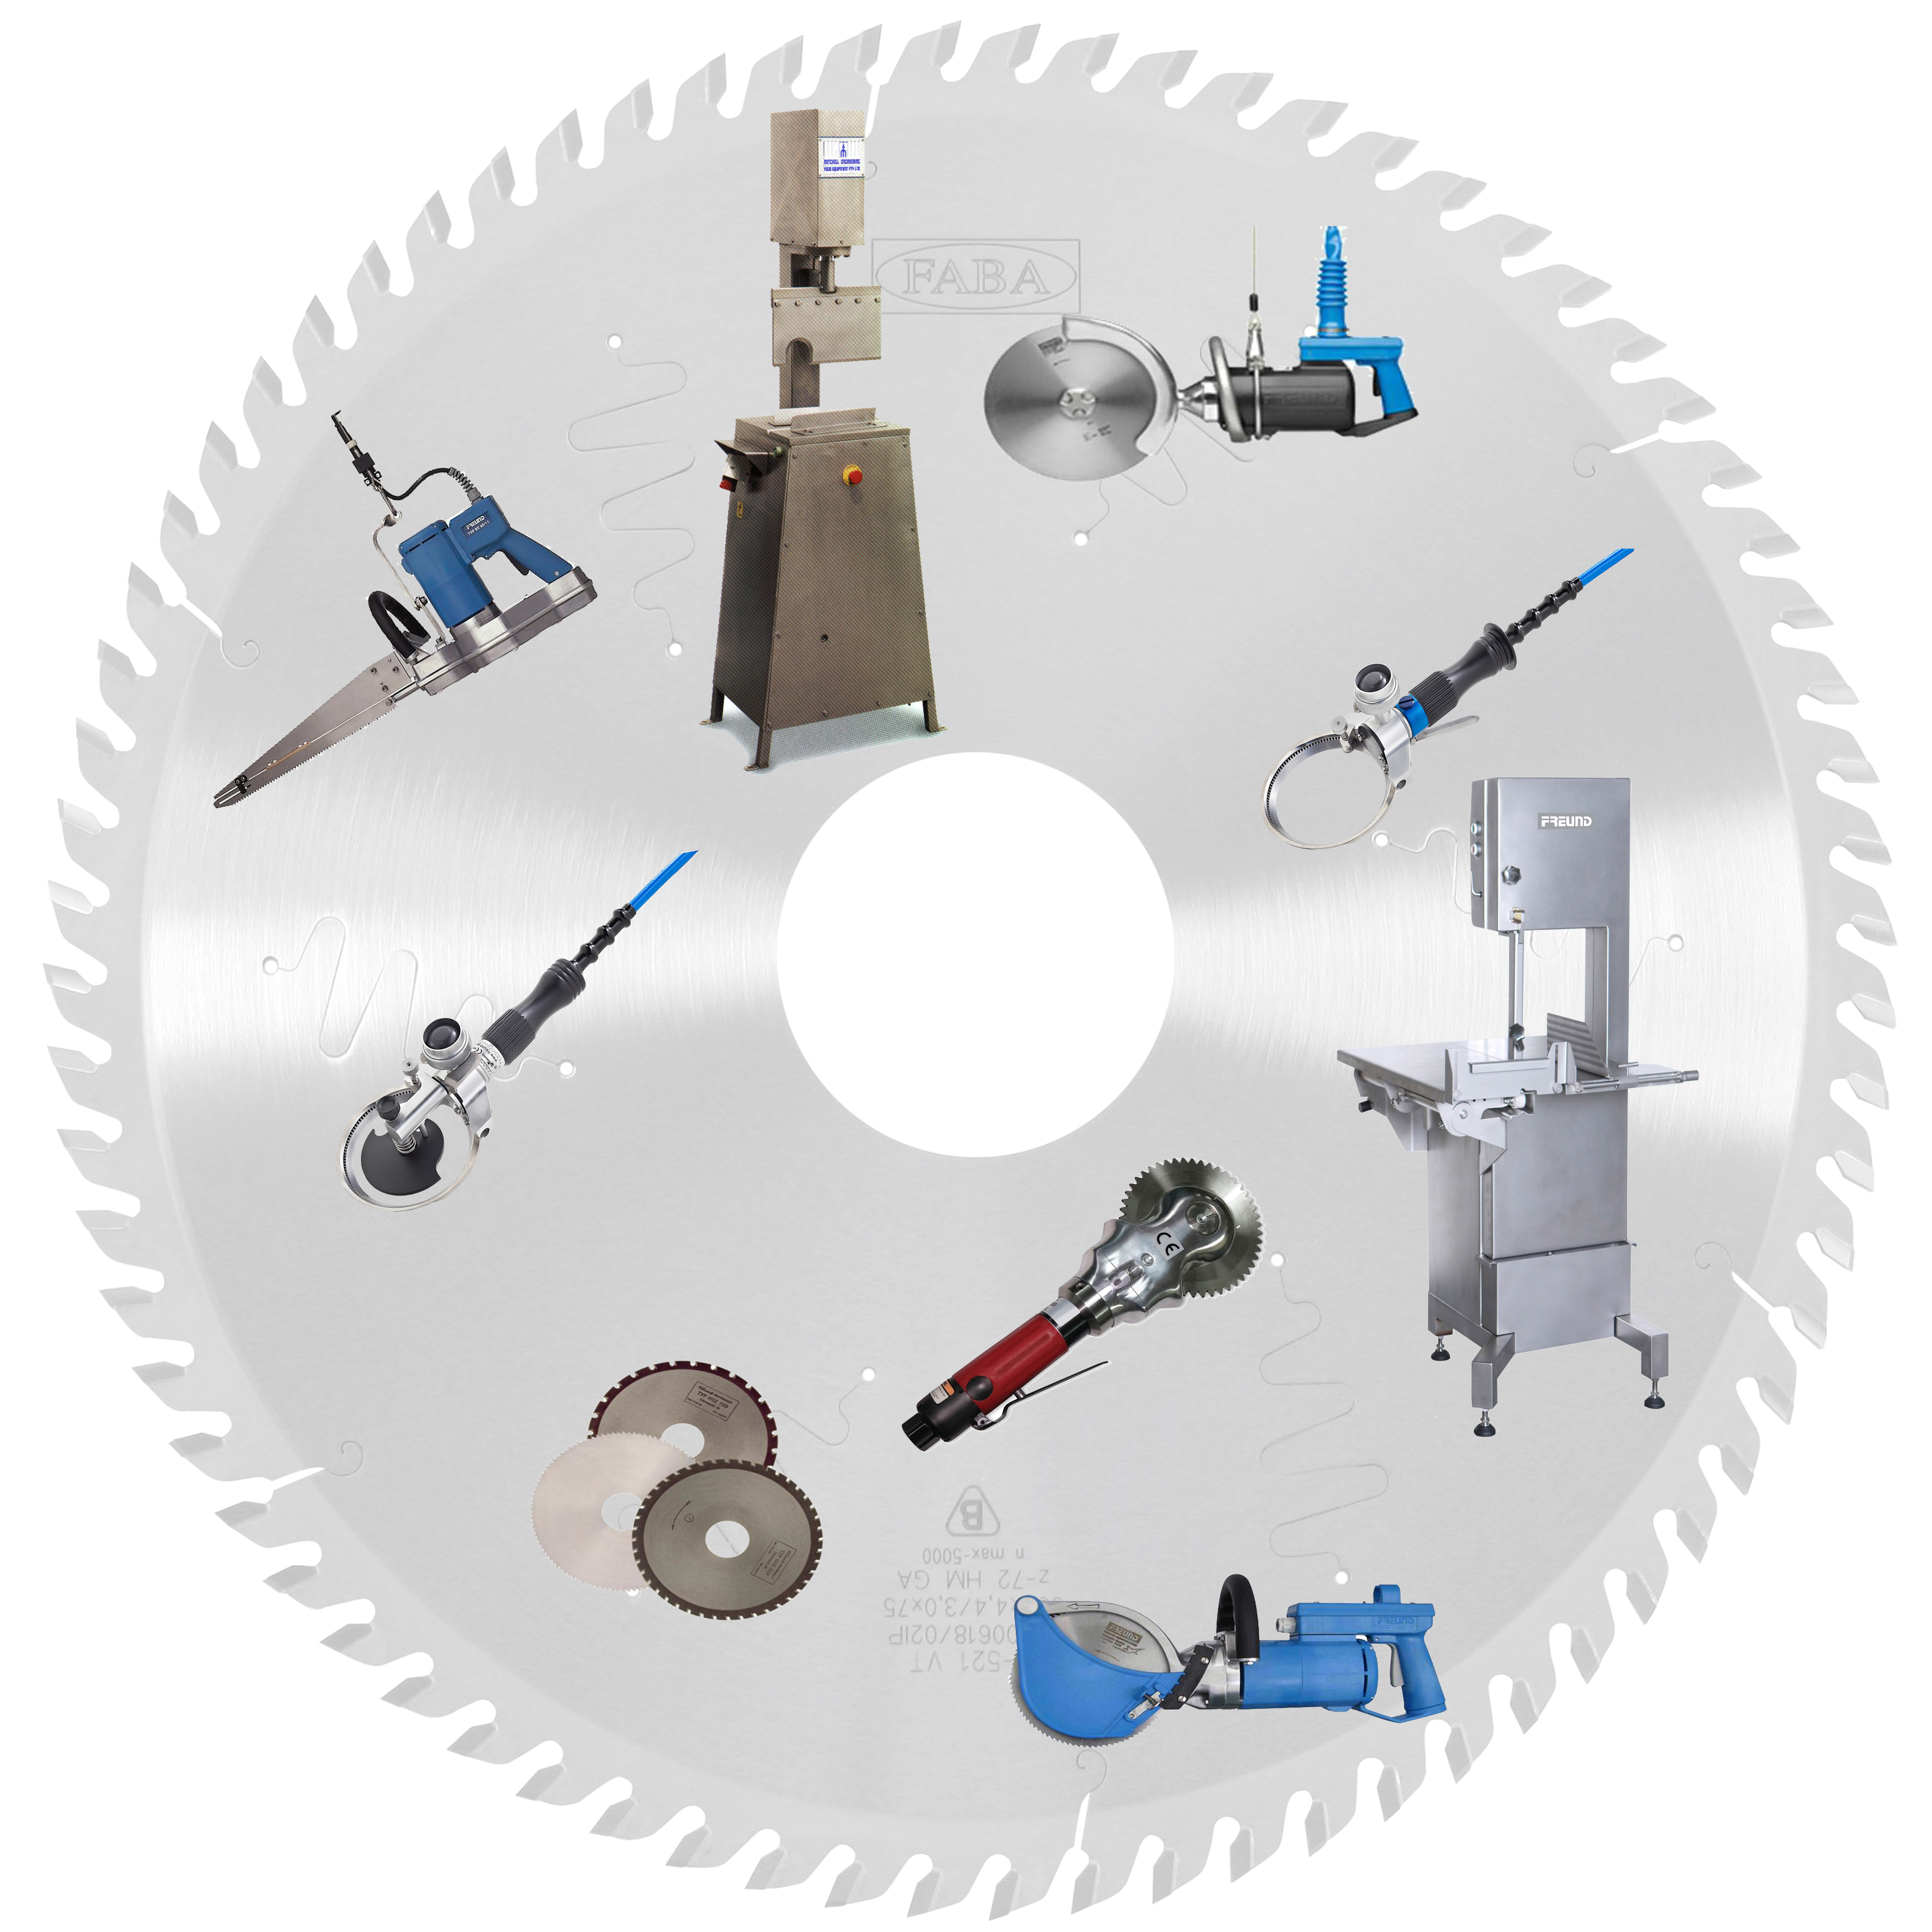 saw-and-cutters-small.jpg